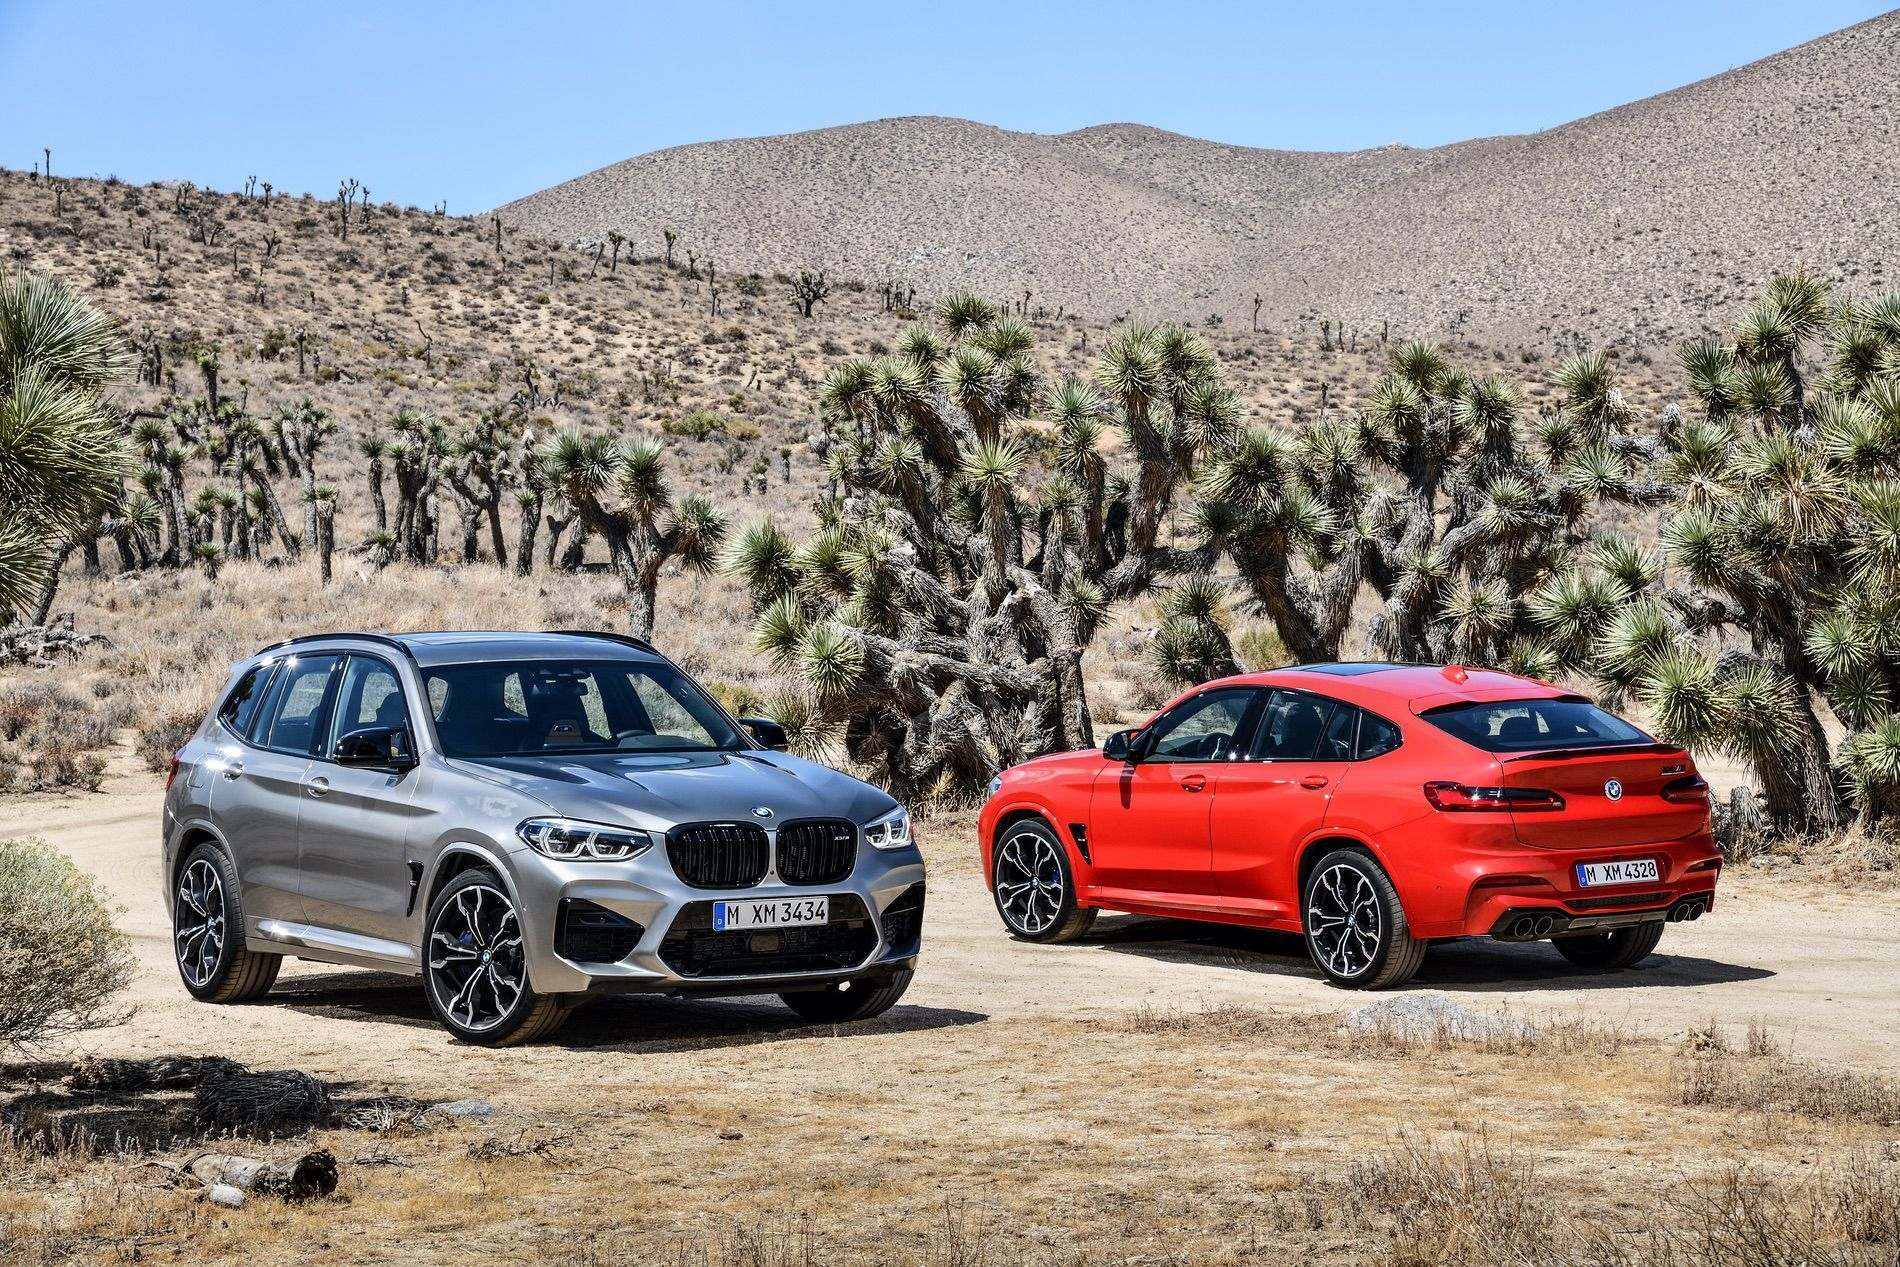 World Premiere Bmw X3 M And X3 M Competition M Division S Most Deserving Suv Bmw X3 Bmw New Bmw